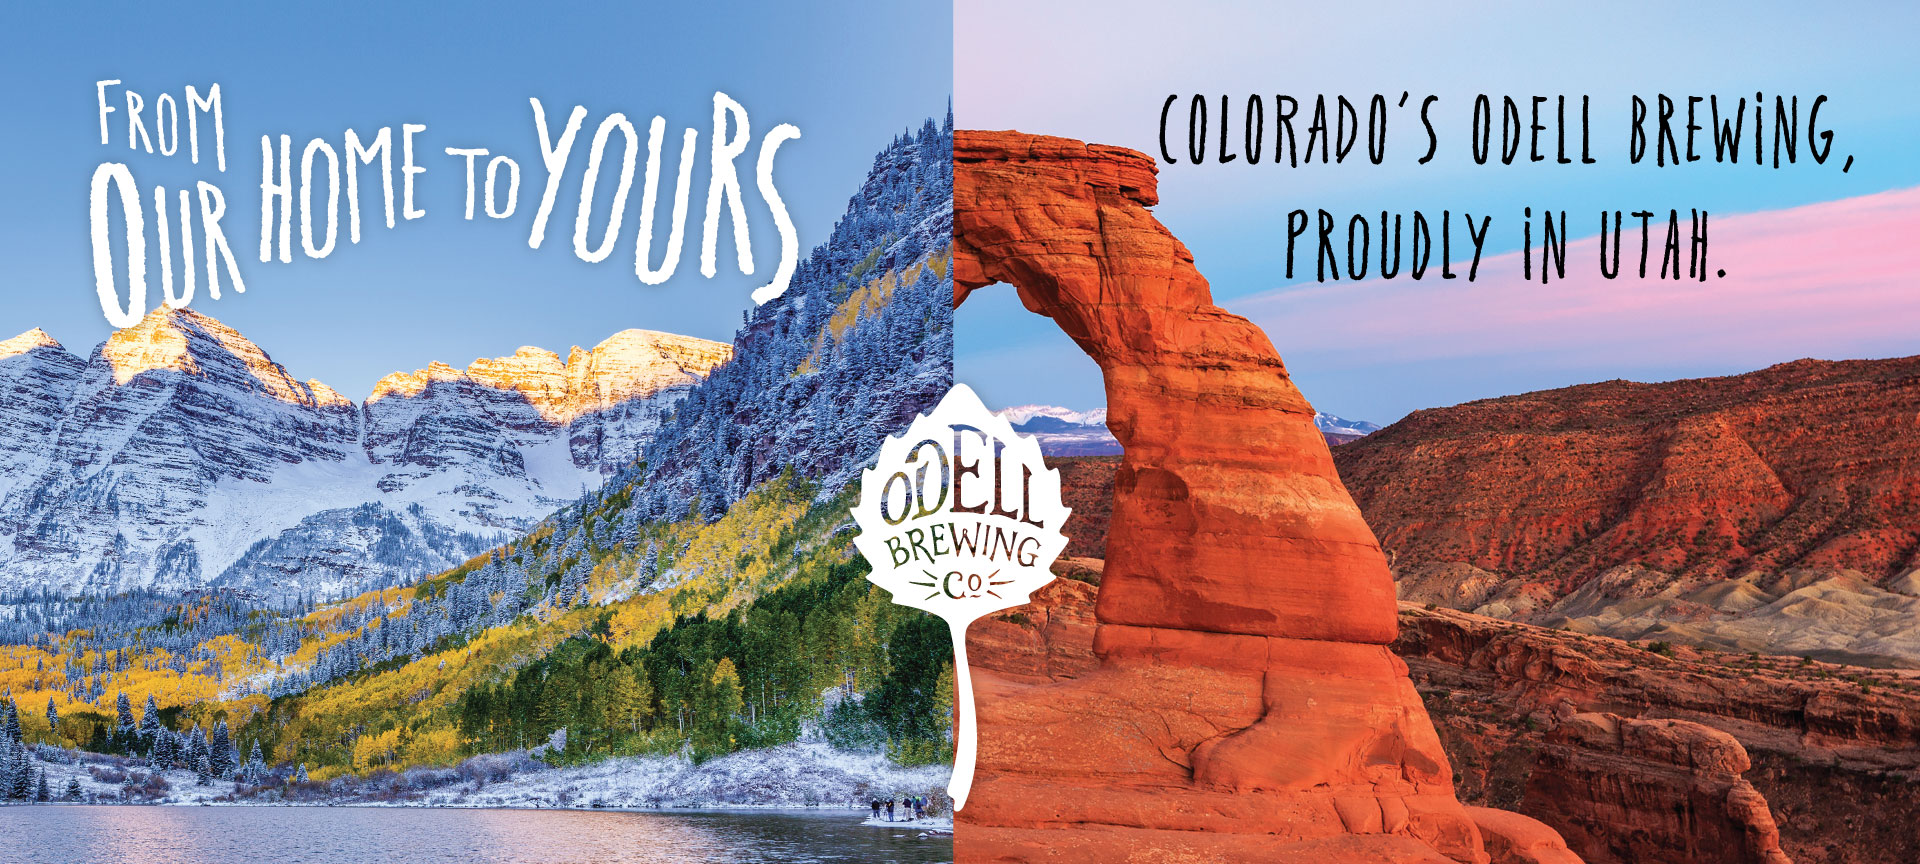 odell brewing expands distribution to utah brewbound com